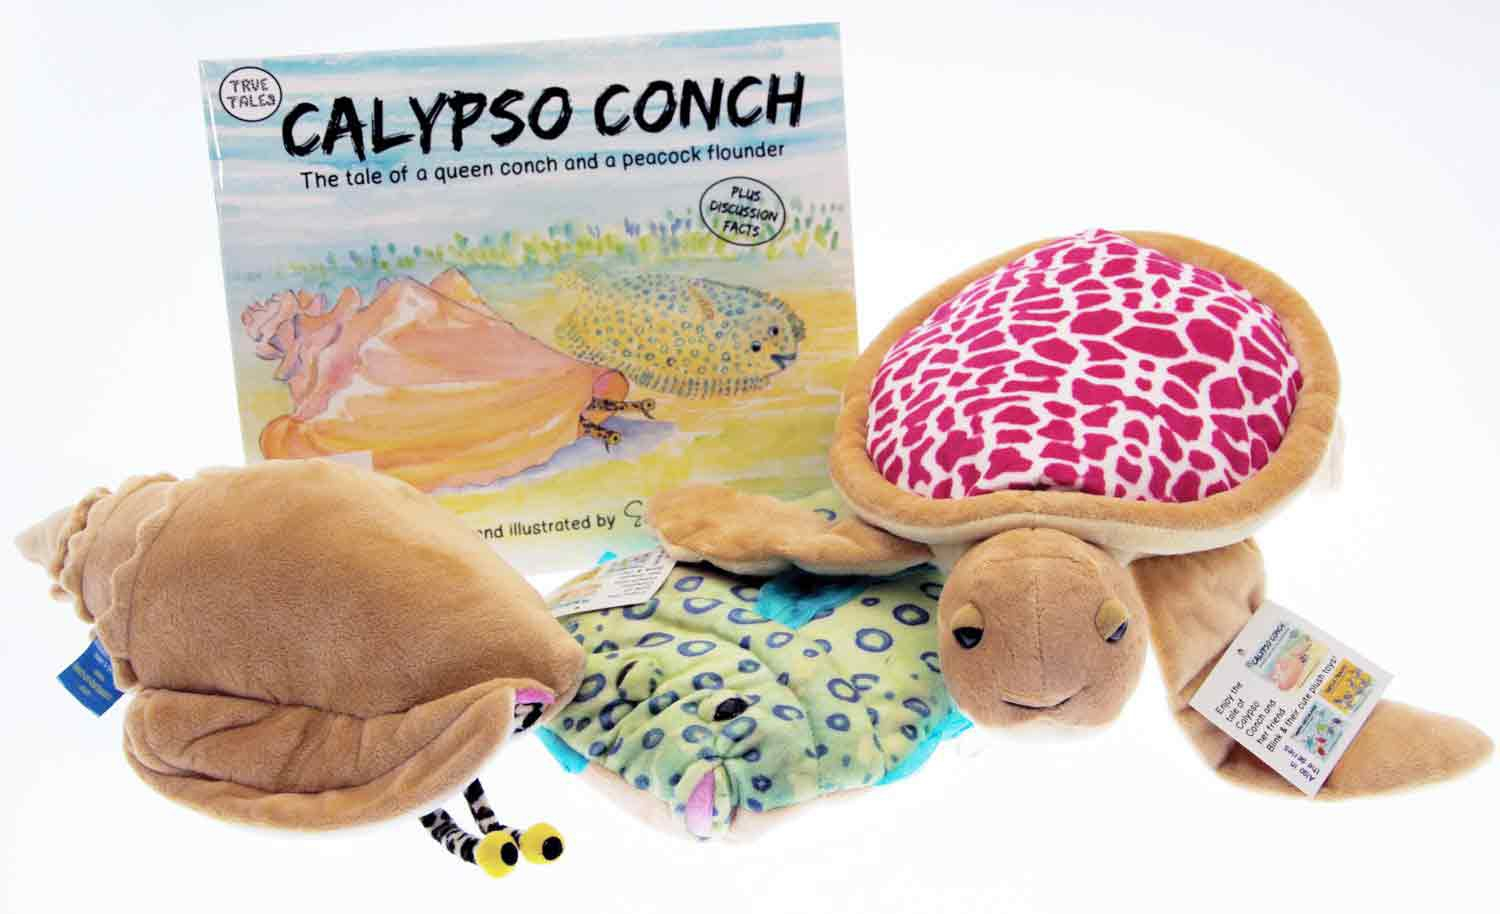 Calypso conch book with a conch shell plush toy and pink turtle plushy